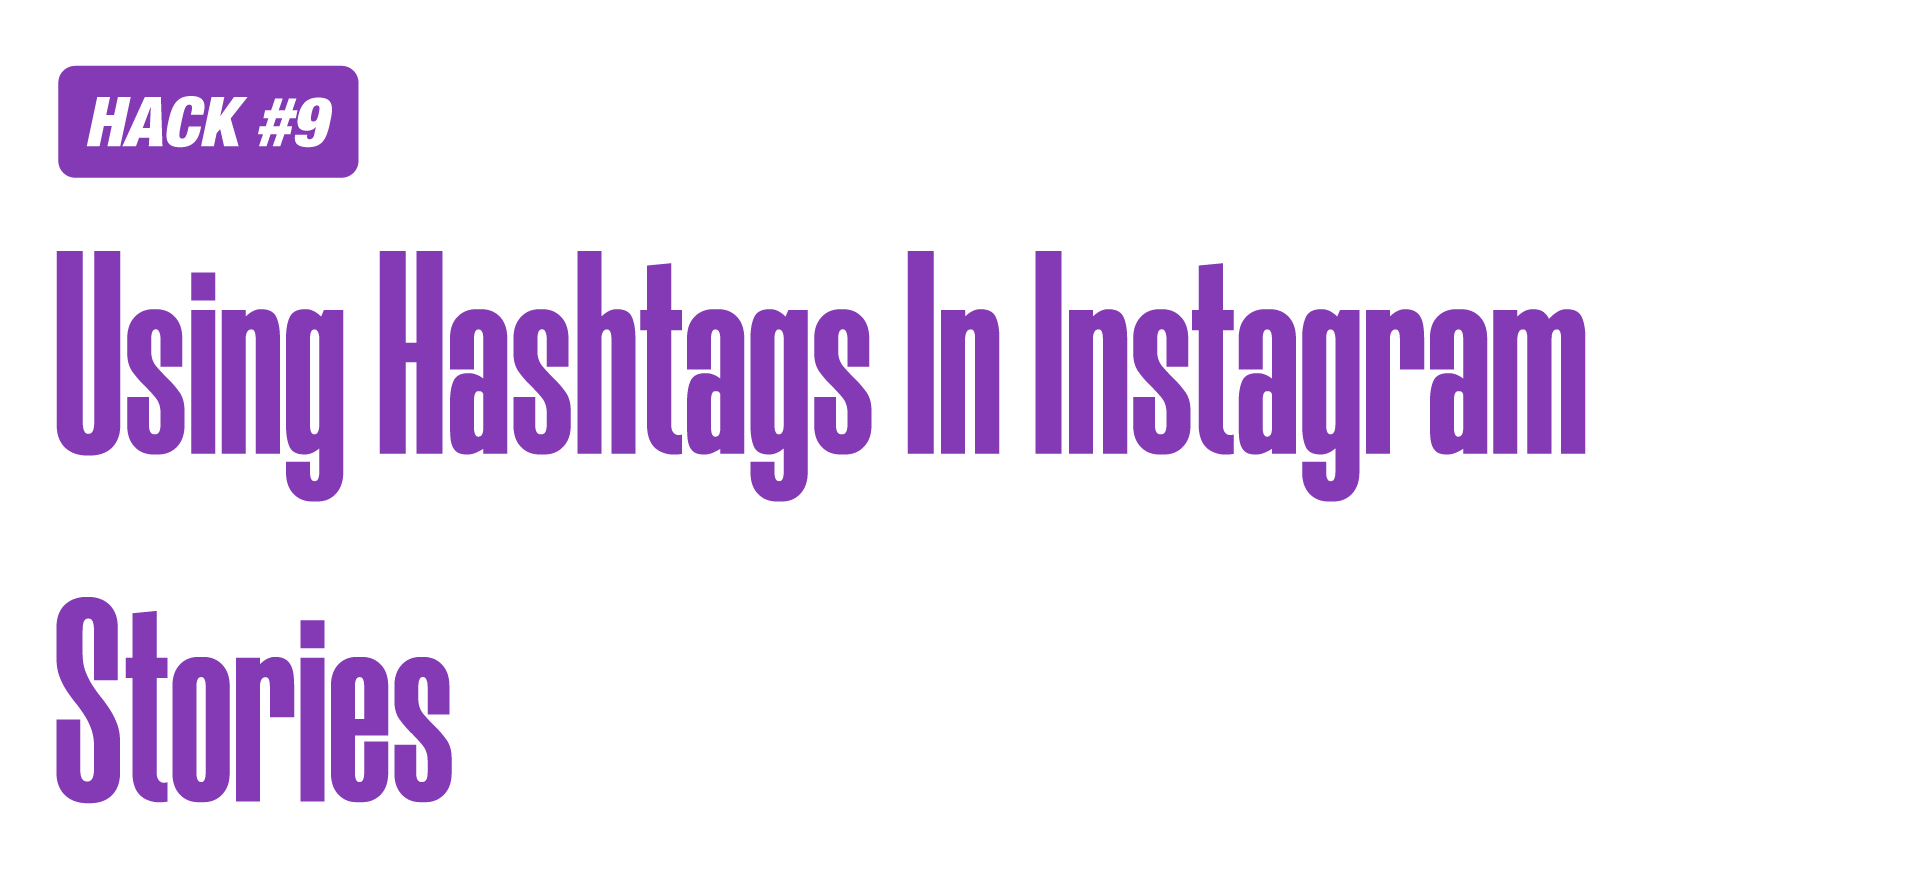 Hashtags in Instagram stories